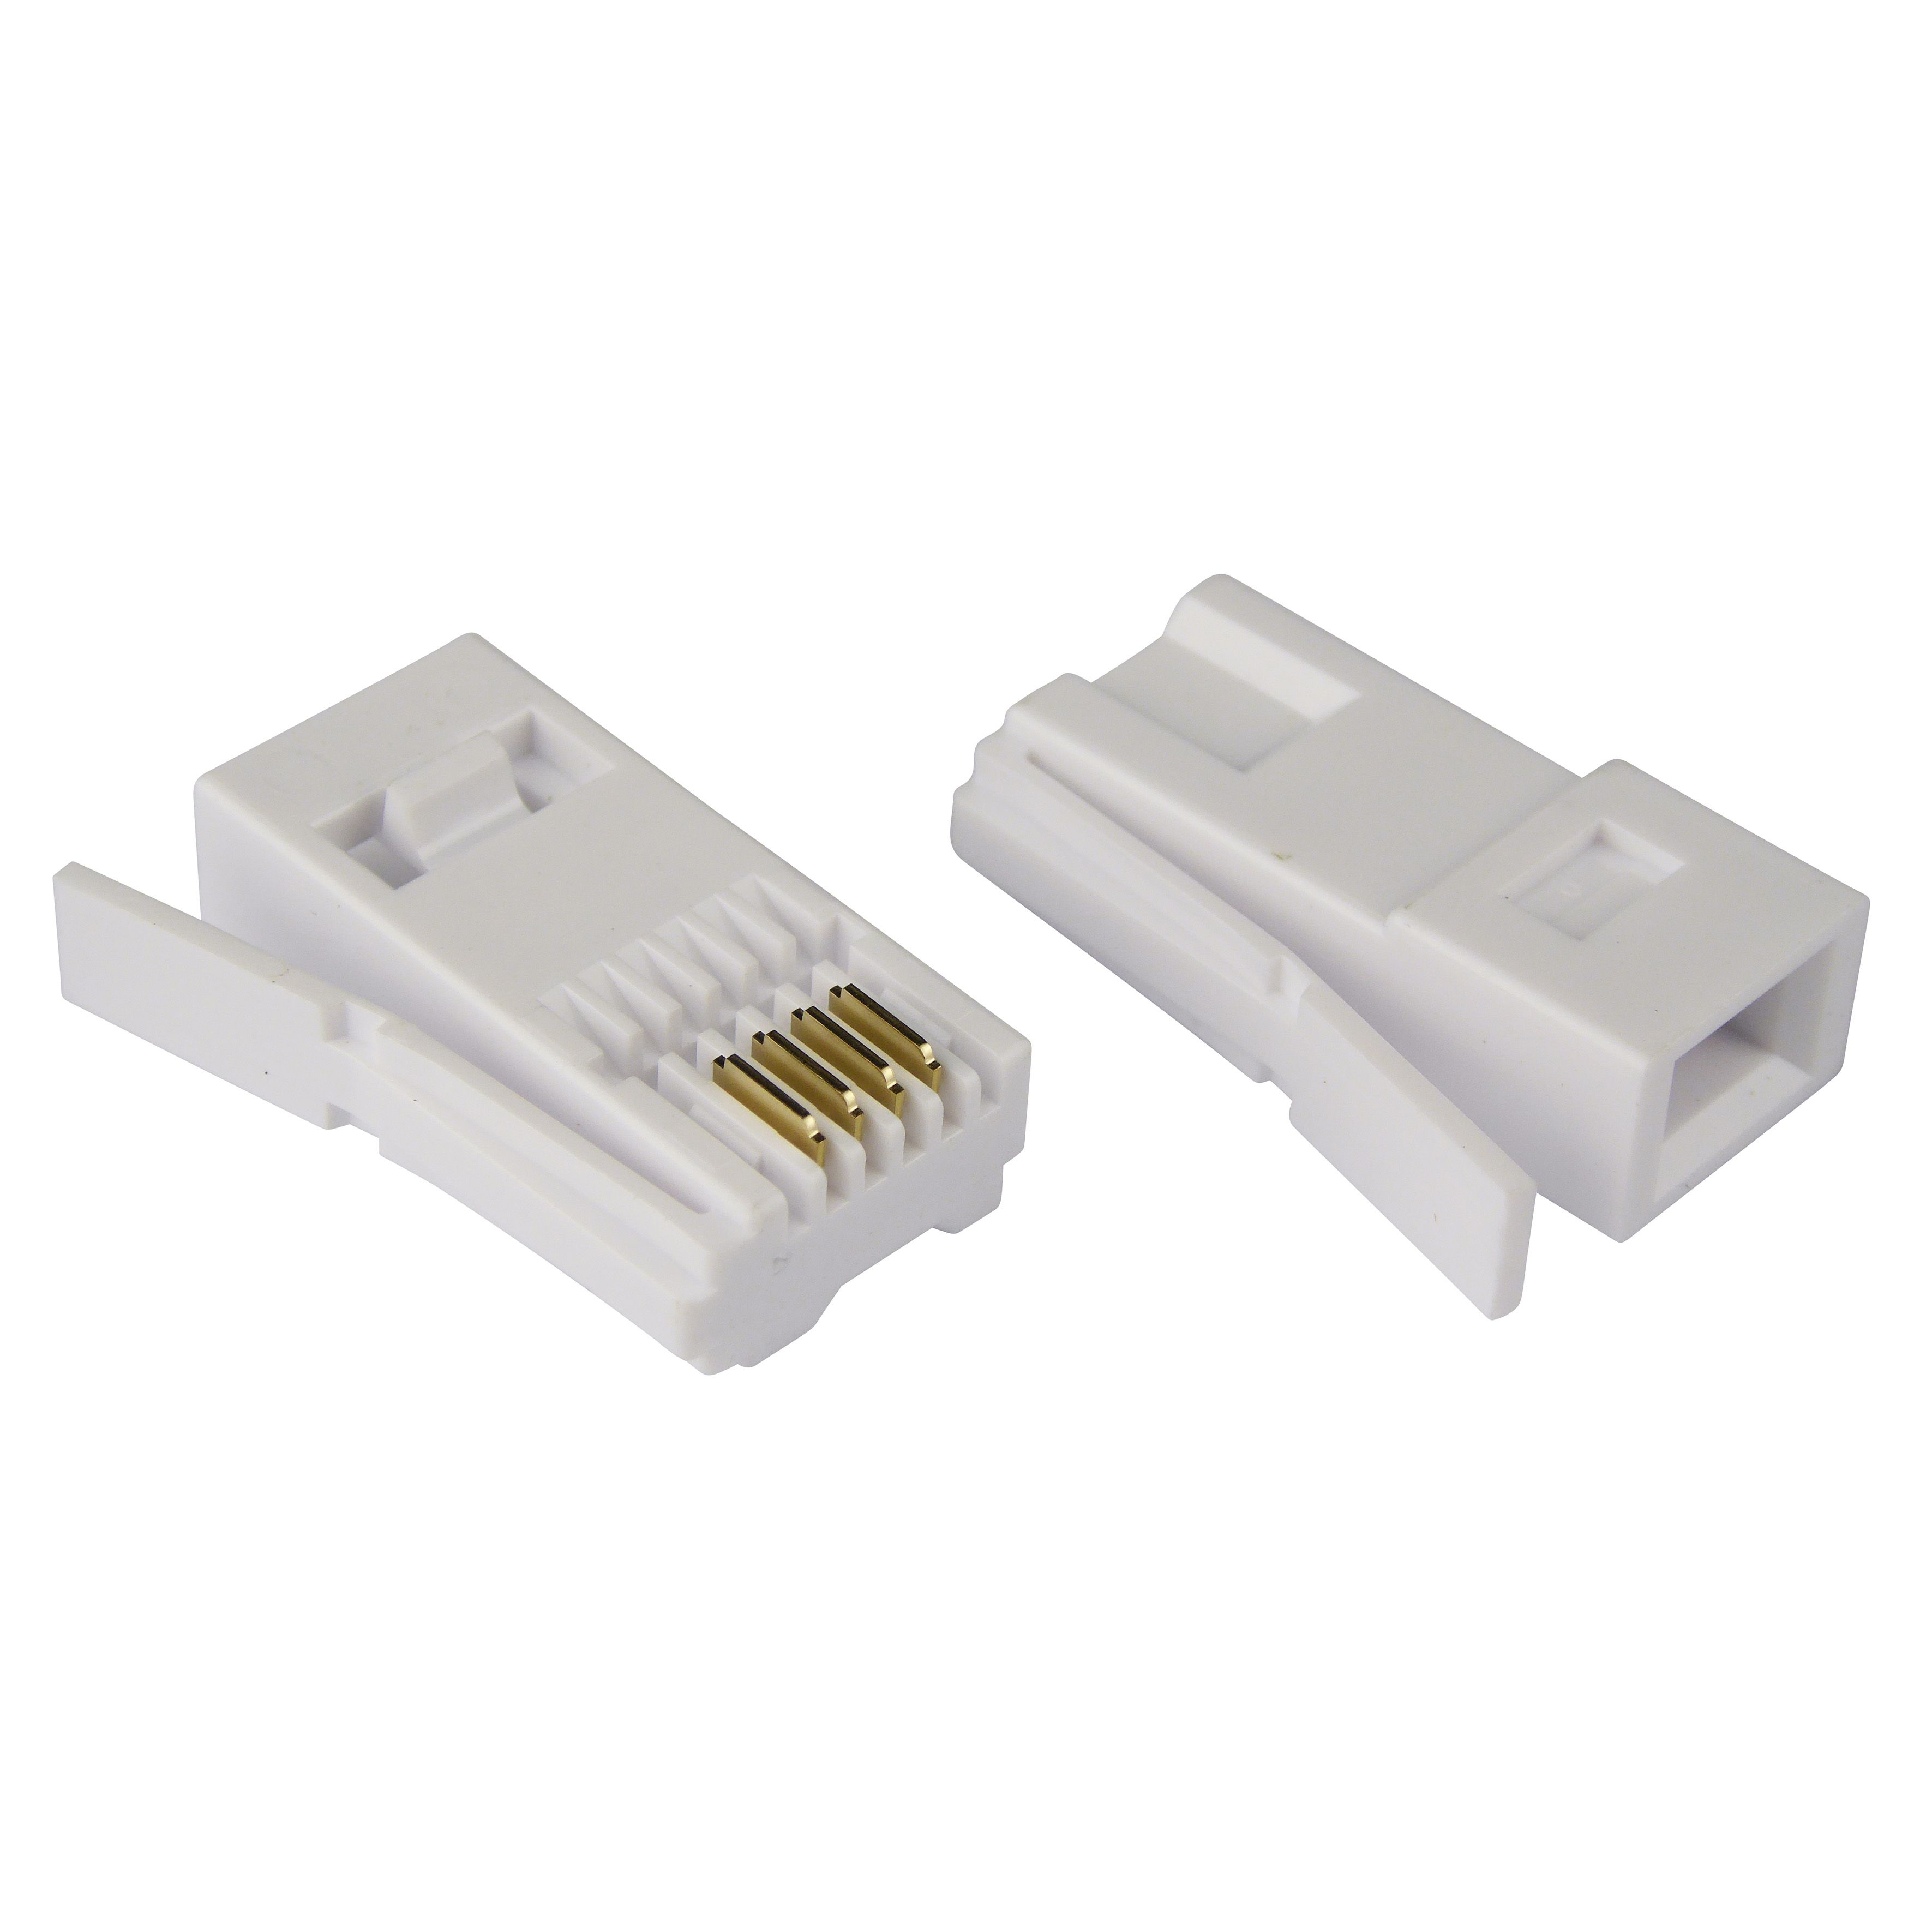 Tristar Beige 431a Connector Pack Of 10 Departments Diy At Bq Wiring Openreach Box